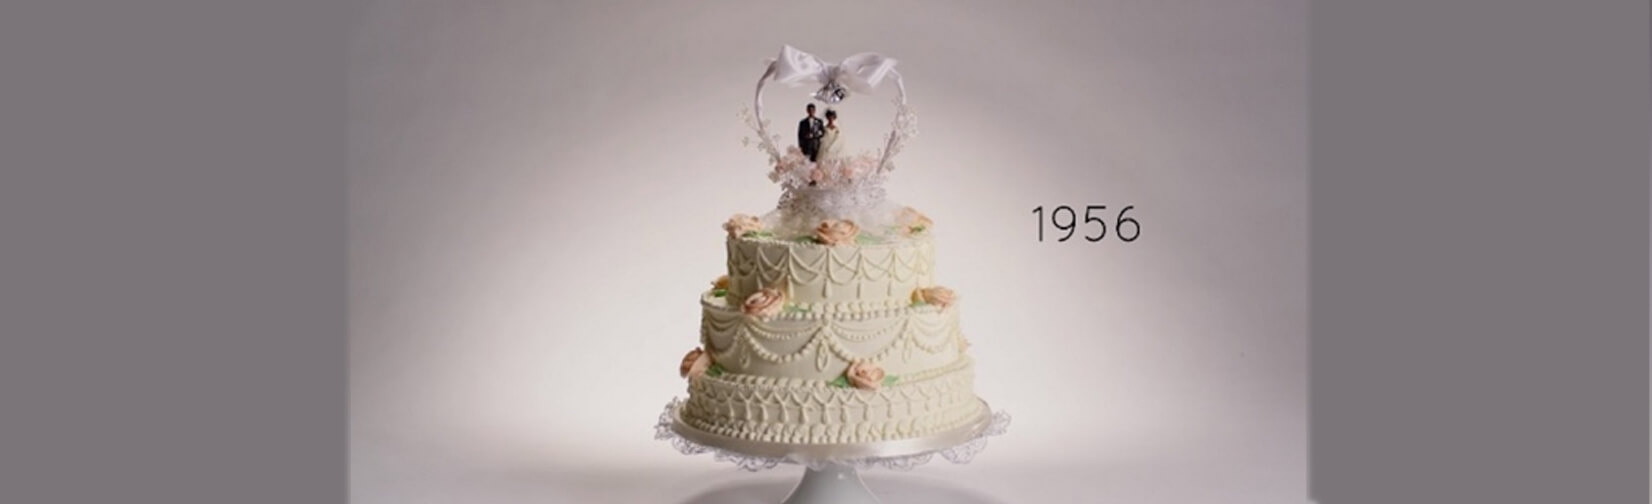 Stunning confections have evolved over the past 100 years